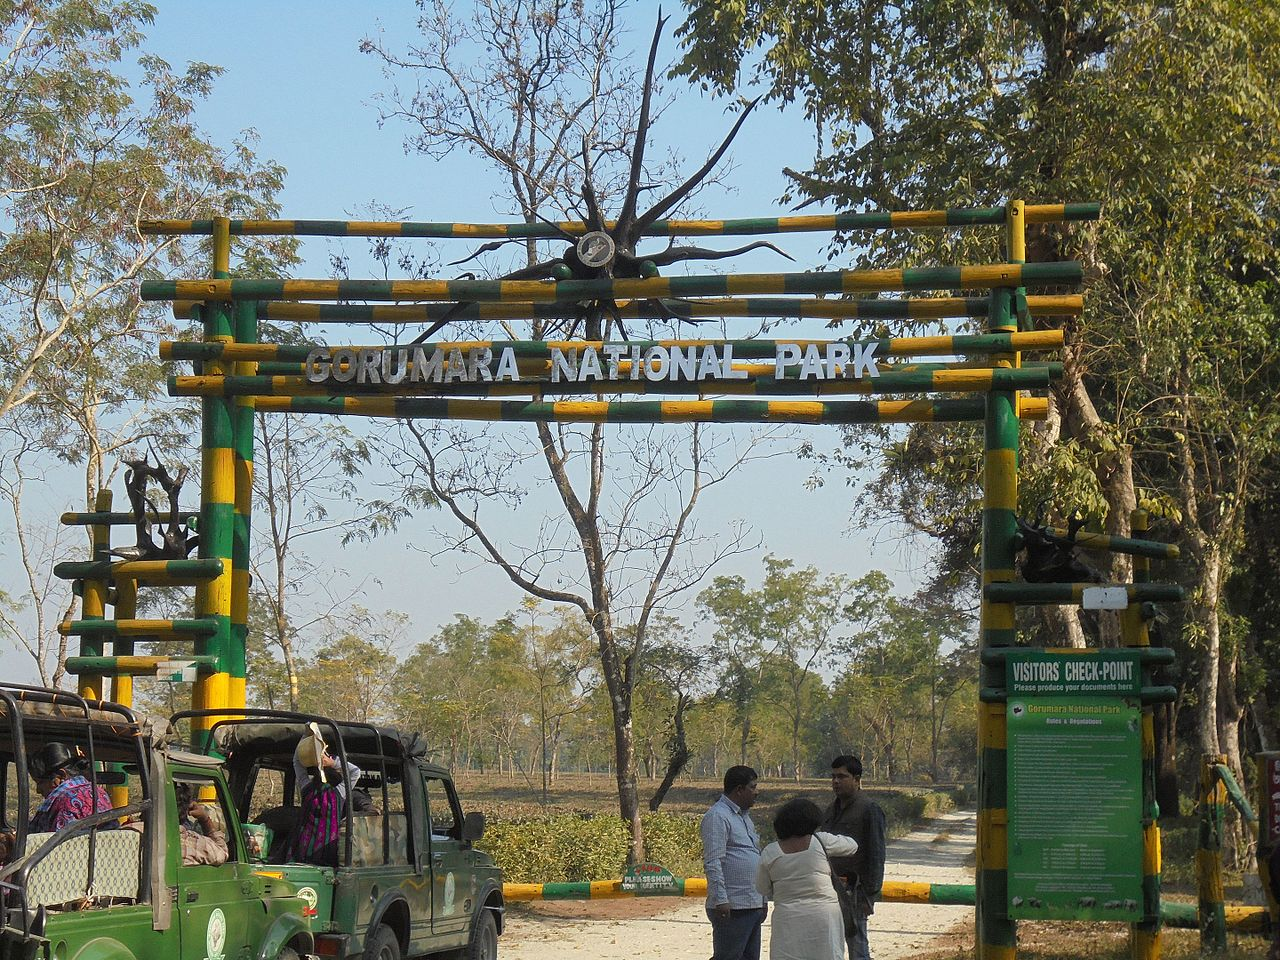 Gorumara National Park - Place in Lataguri That Every Wanderlust Travelers Will Love